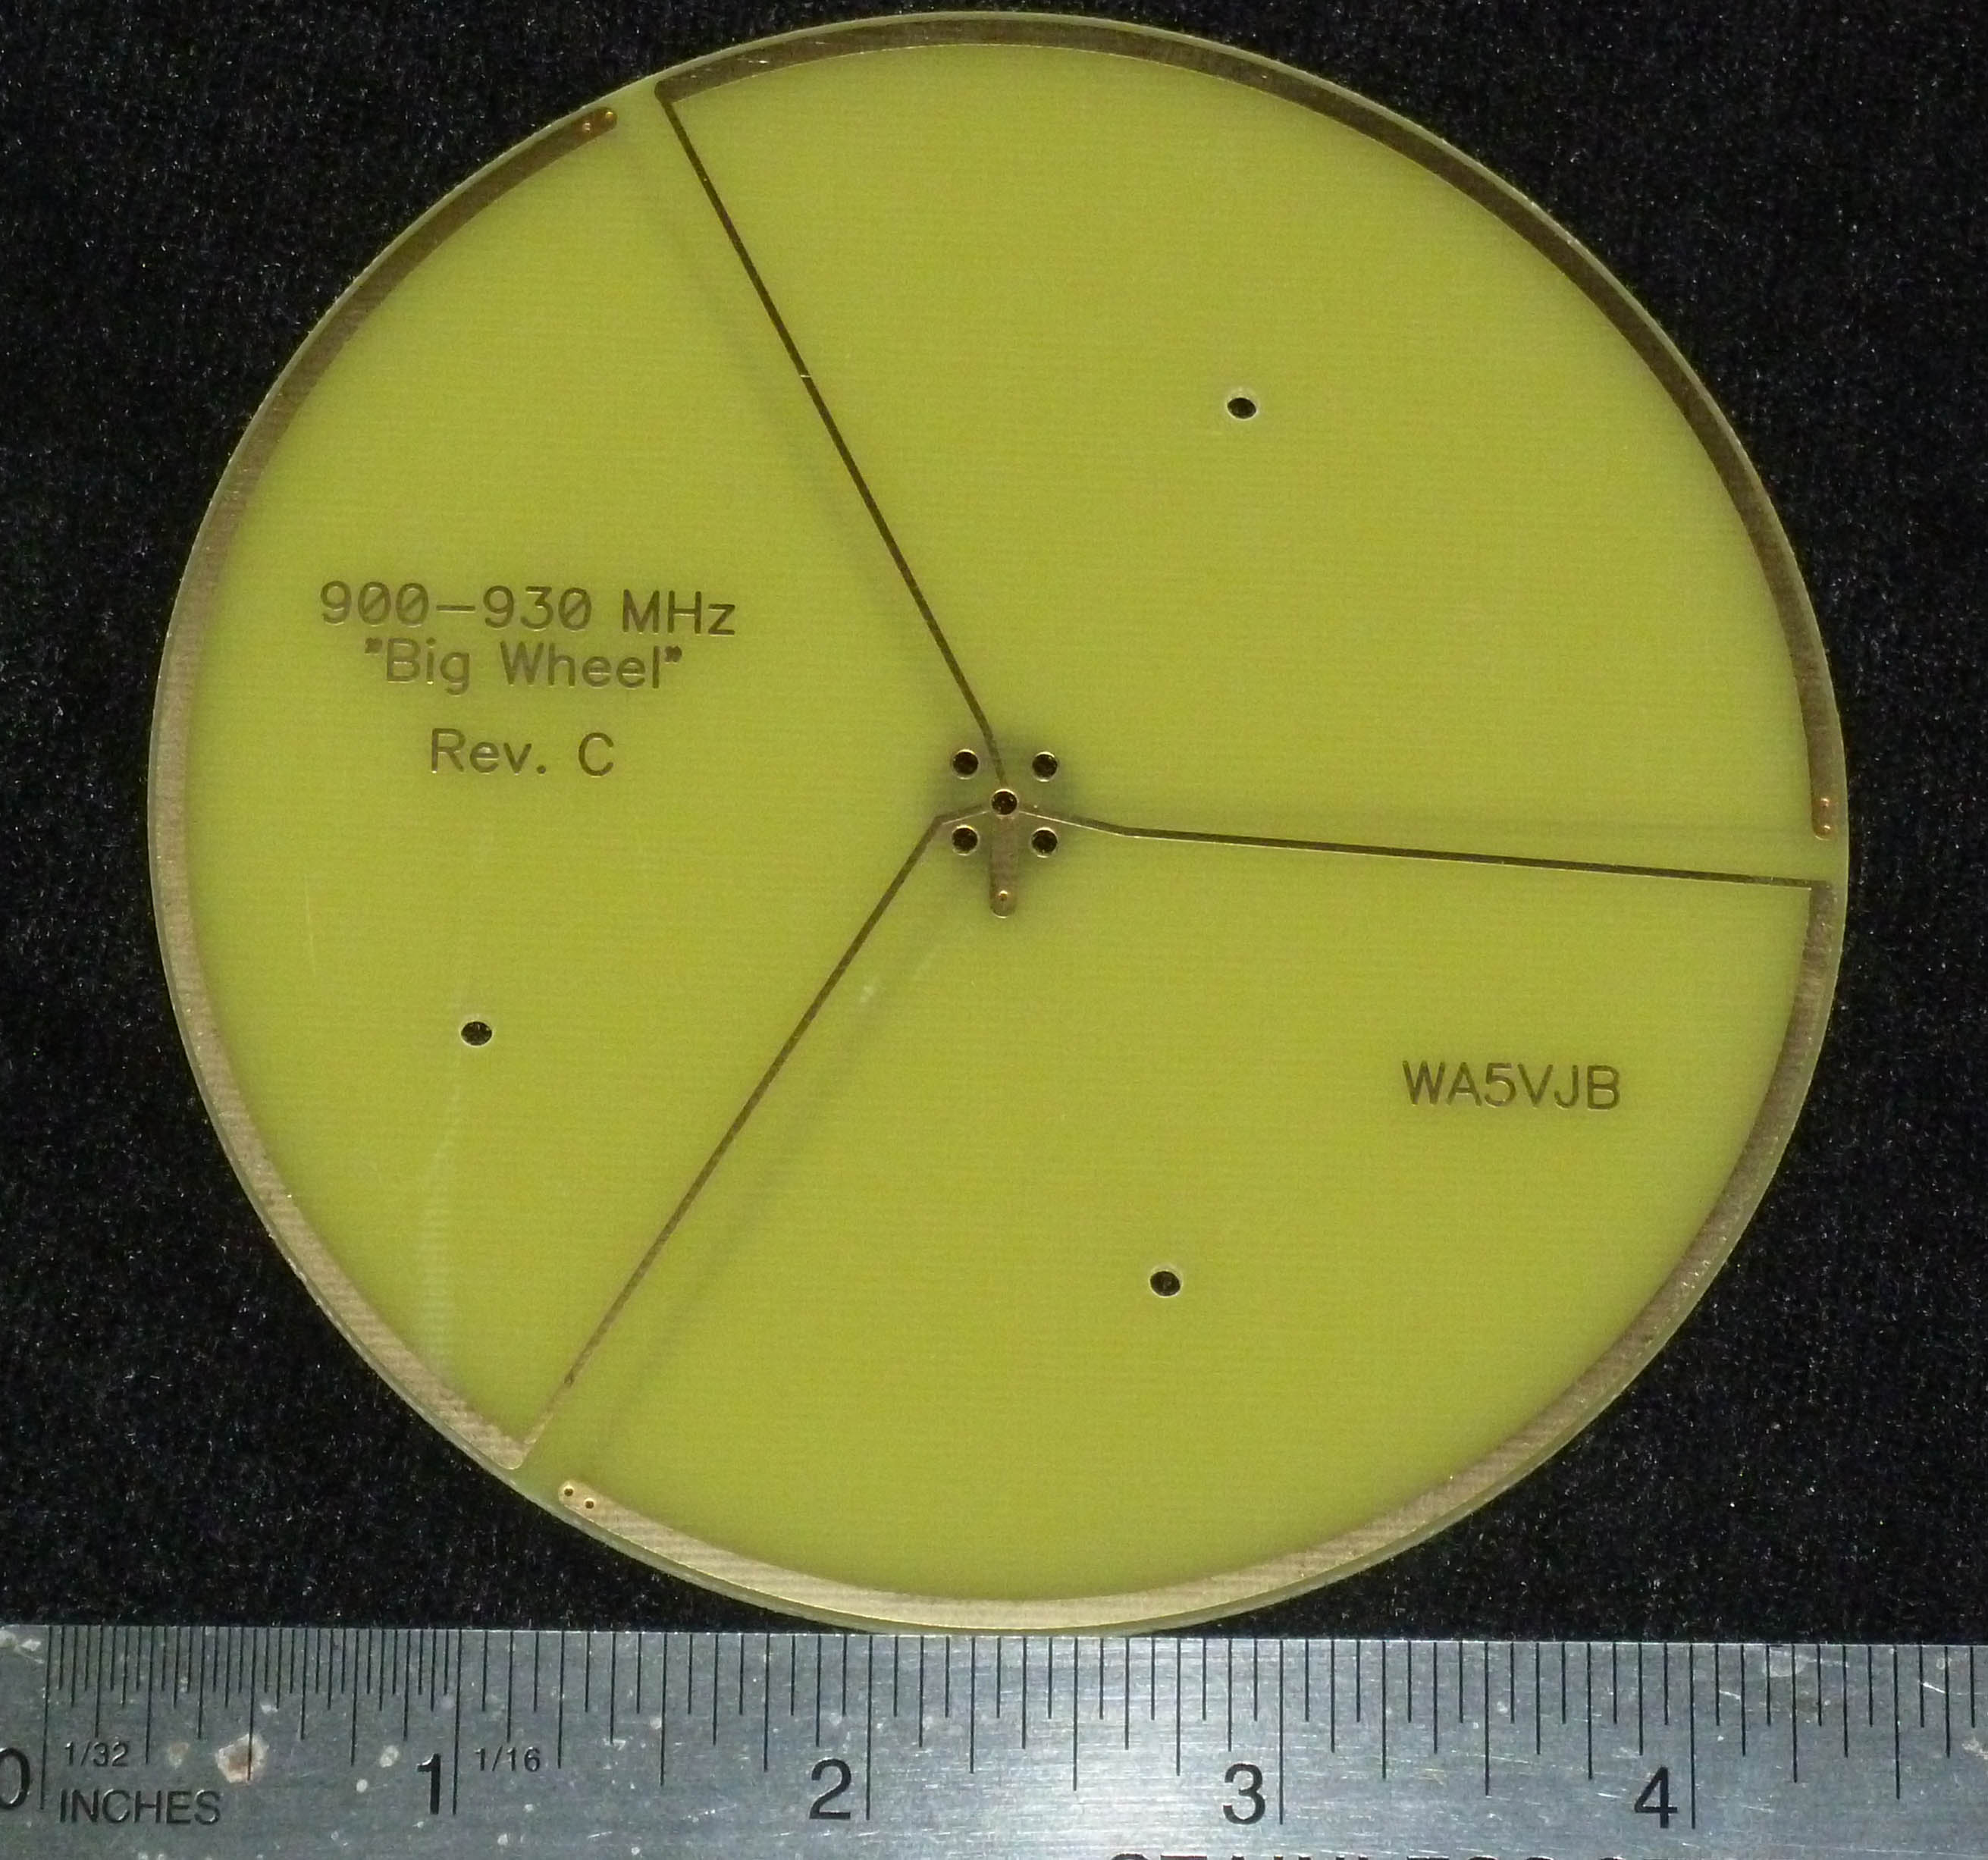 900 MHz Wheel style printed Circuit Board Antenna